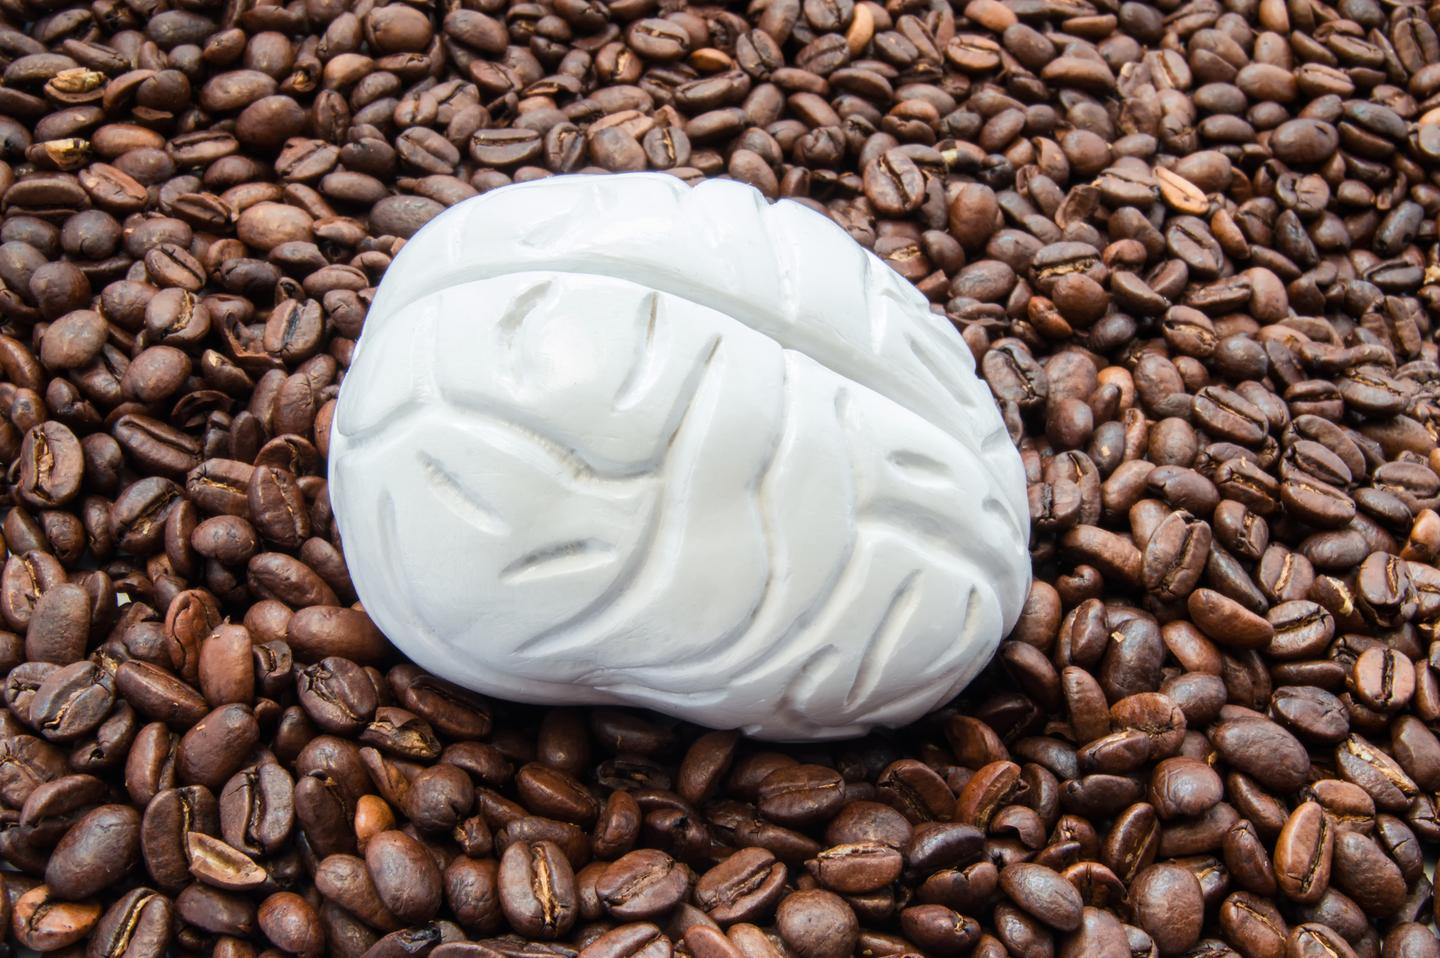 Research has found caffeine reduces the volume of gray matter in a brain but this effect is temporary and its influence on cognitive processes is unclear